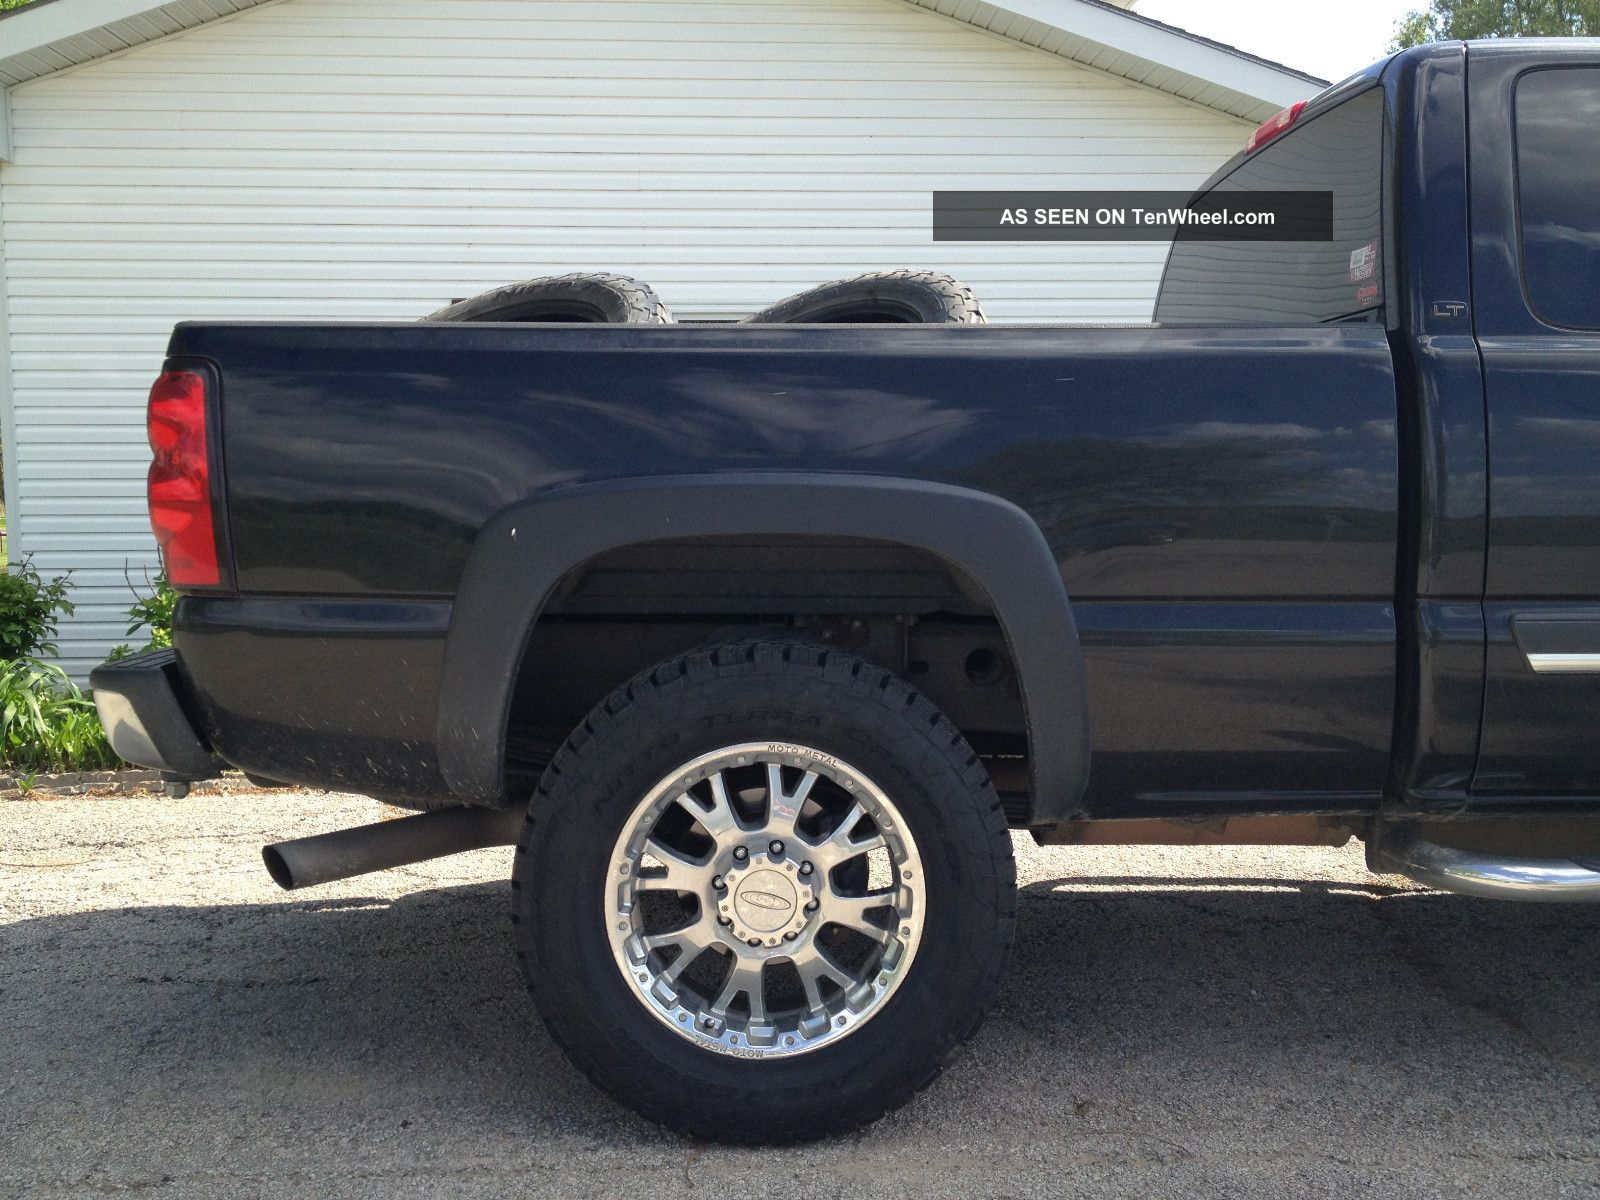 2006 Chevrolet Silverado 2500 Hd Lt Extended Cab Pickup 6 0l Lifted 20 Quot Wheels